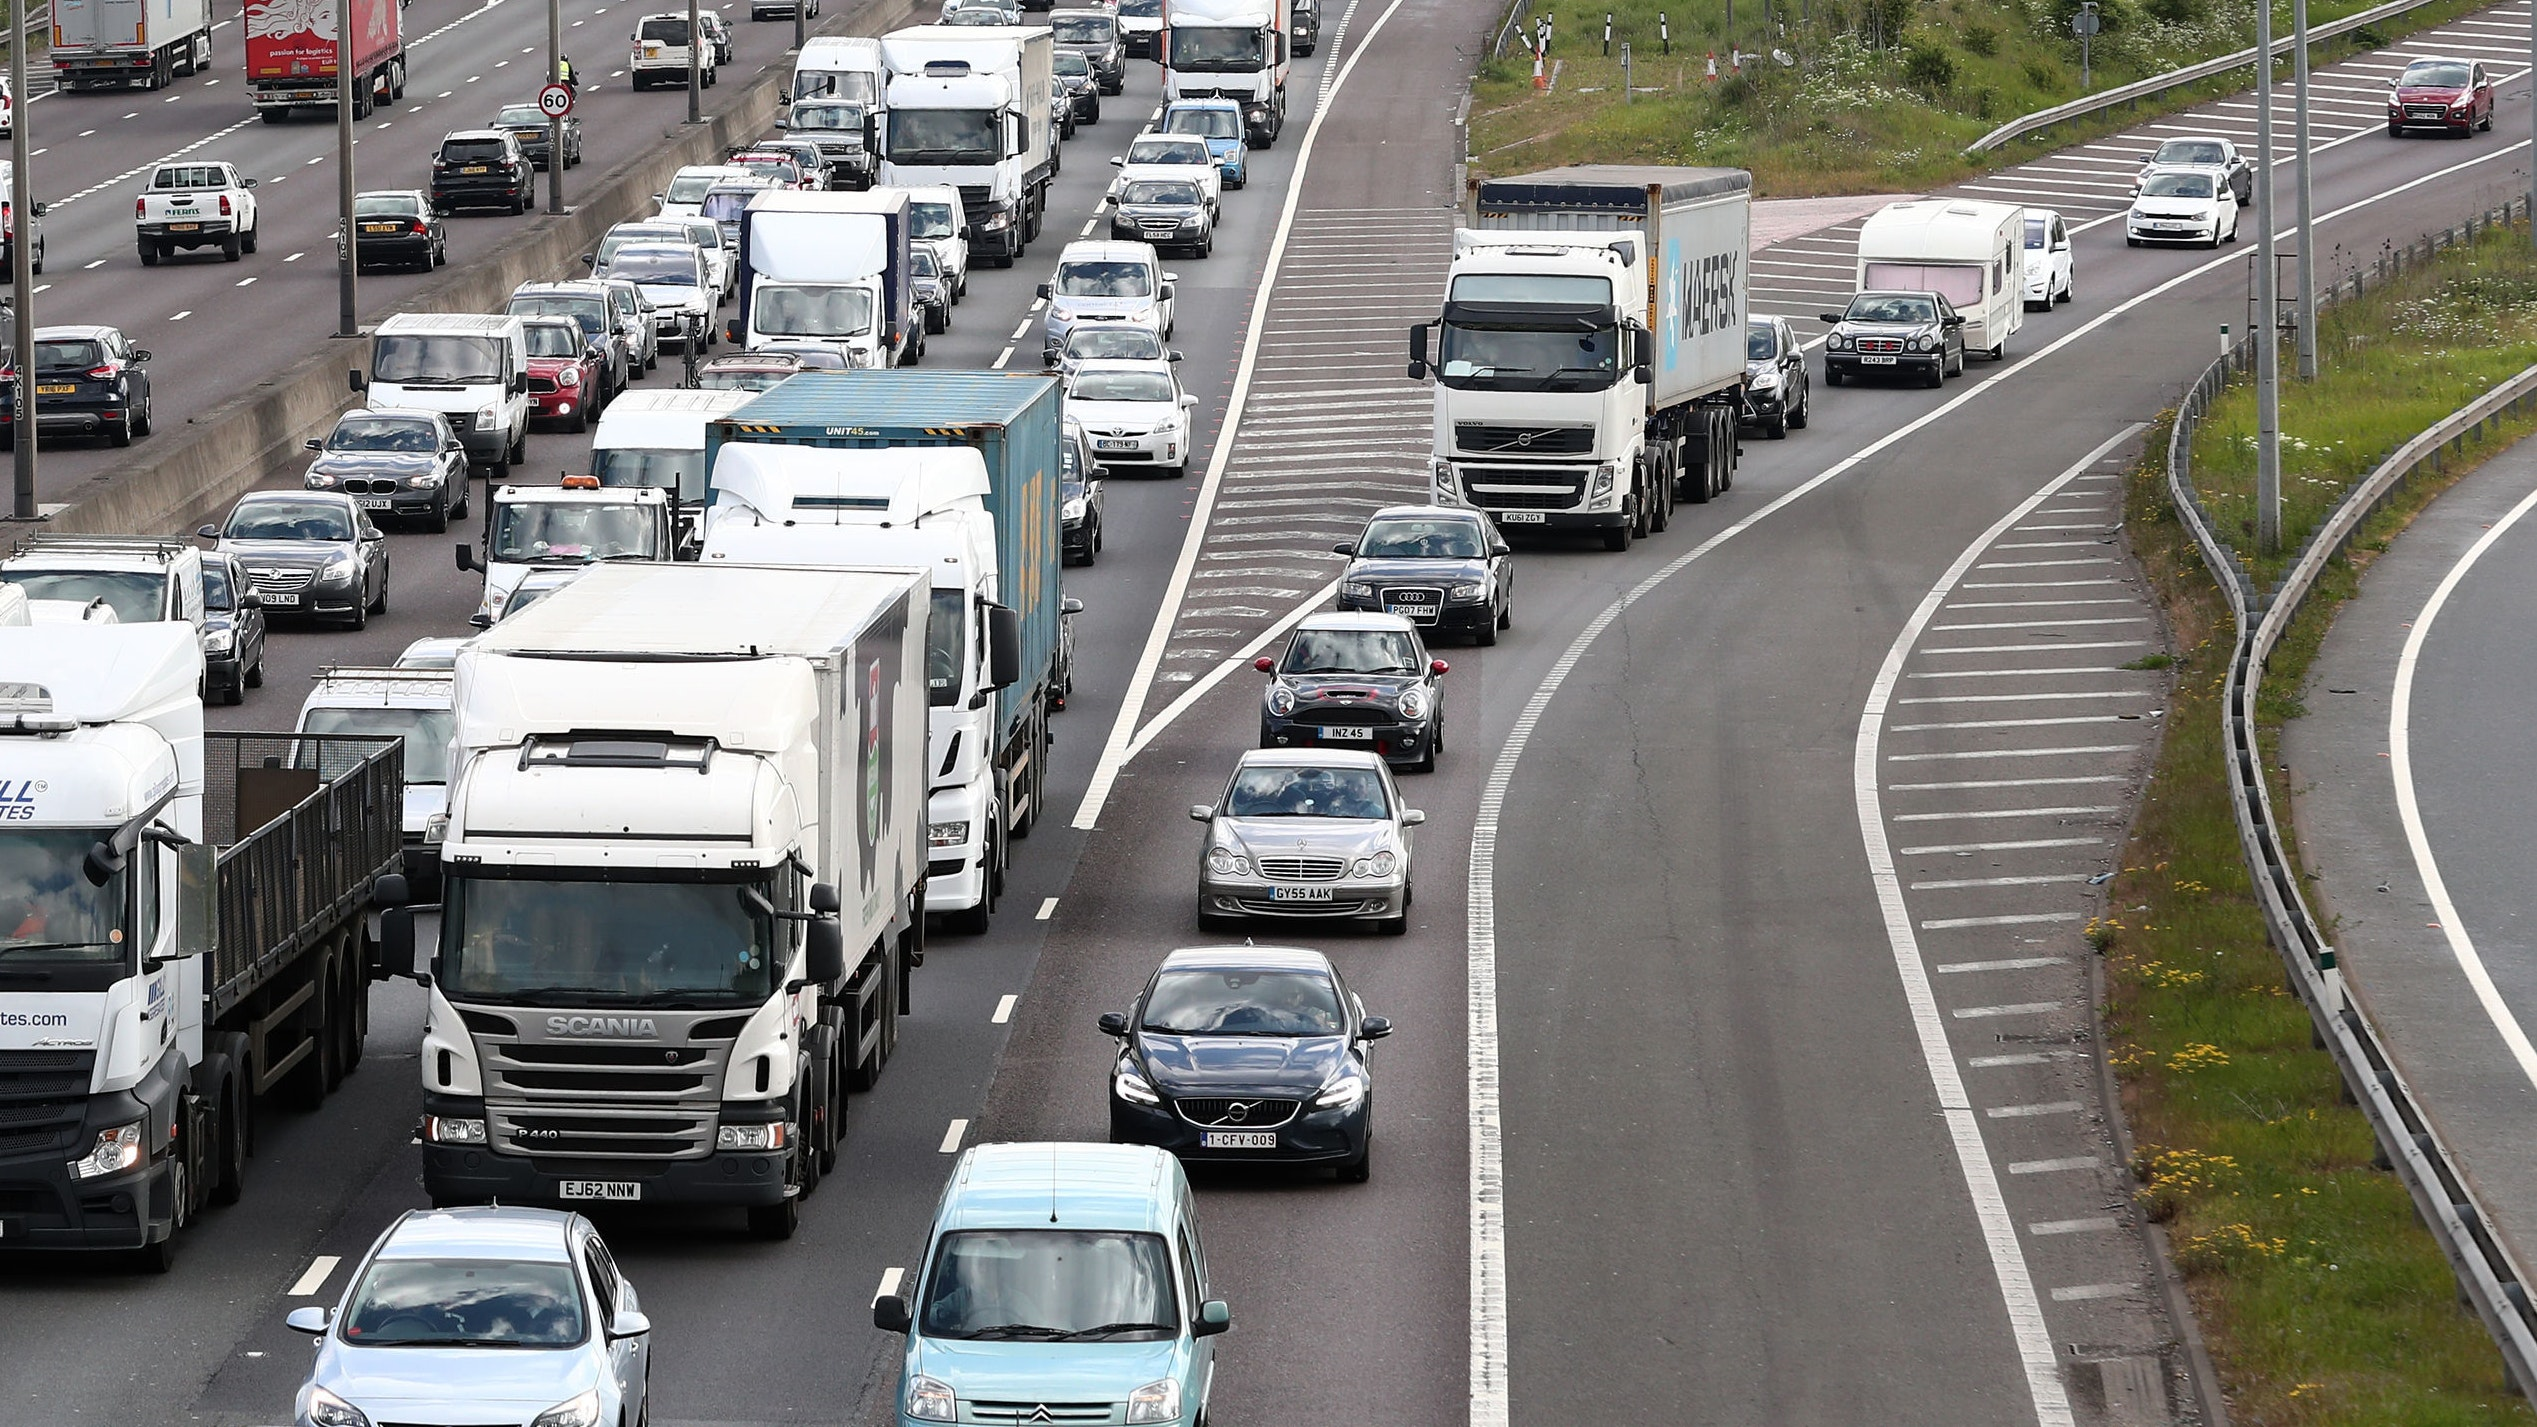 Britain among world's worst for traffic jams